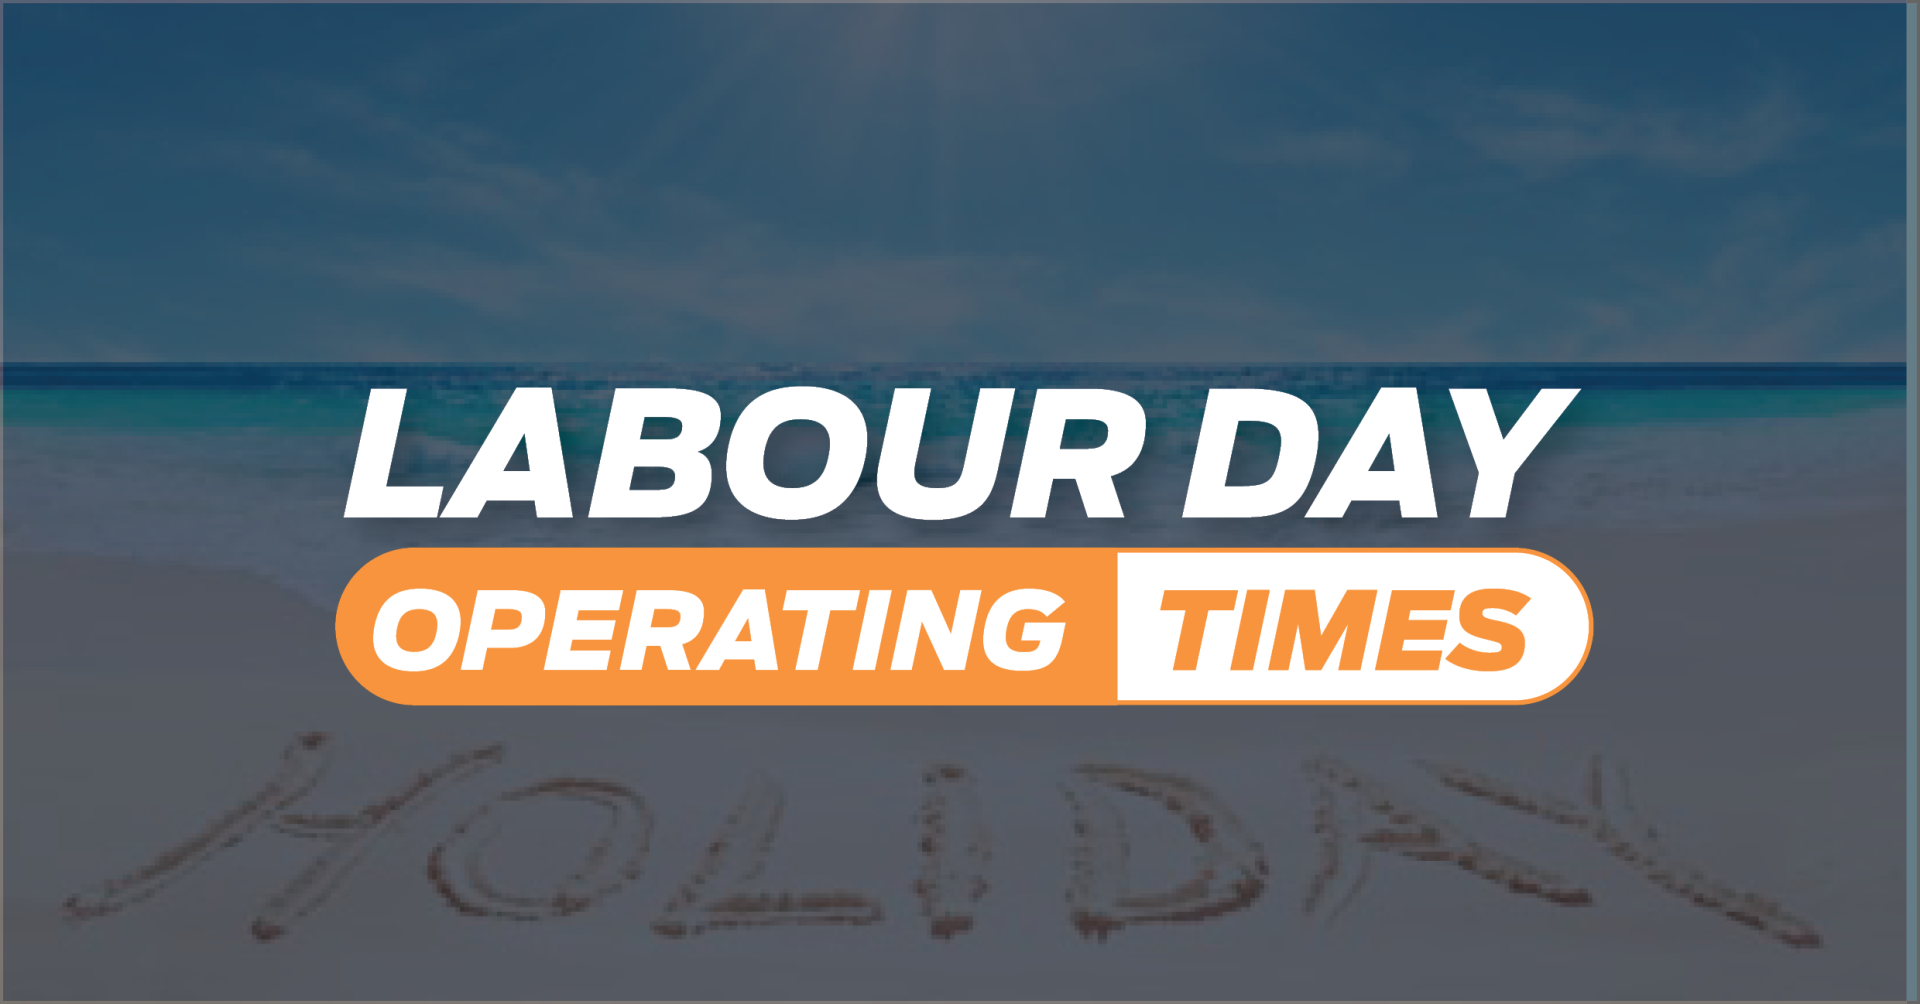 Labour Day Operating Times